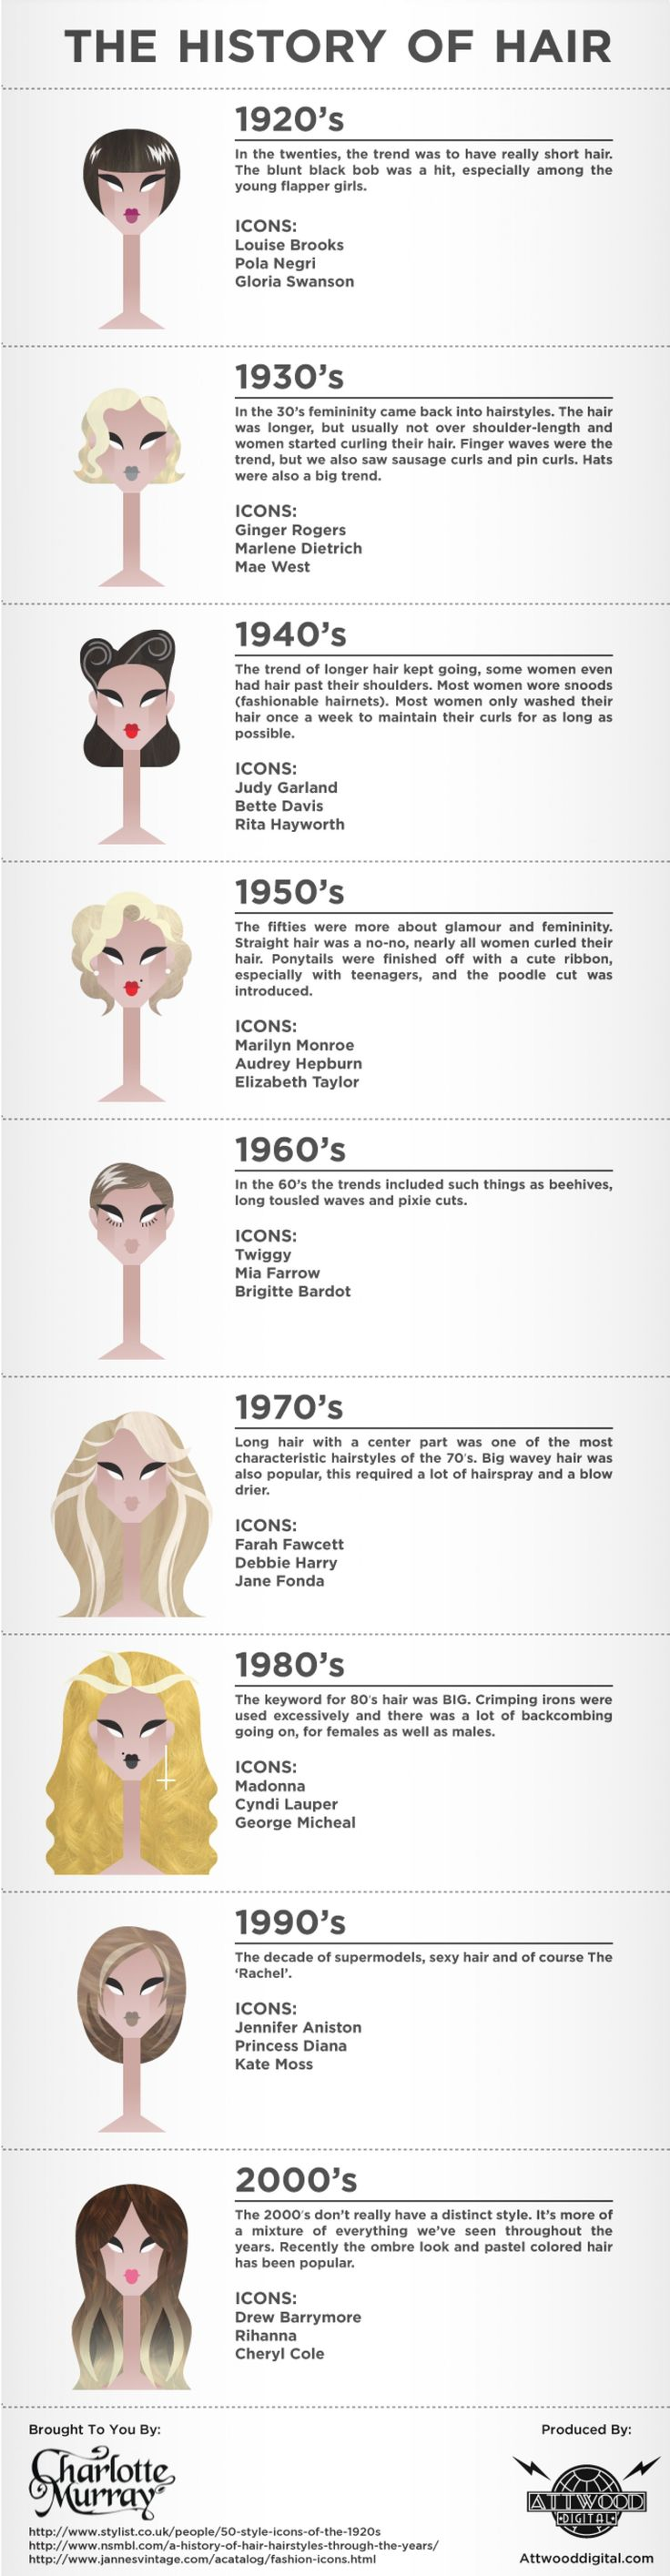 Check out this cool graphic of The History of Hair! What decade does your hair belong to? 714.952.2030